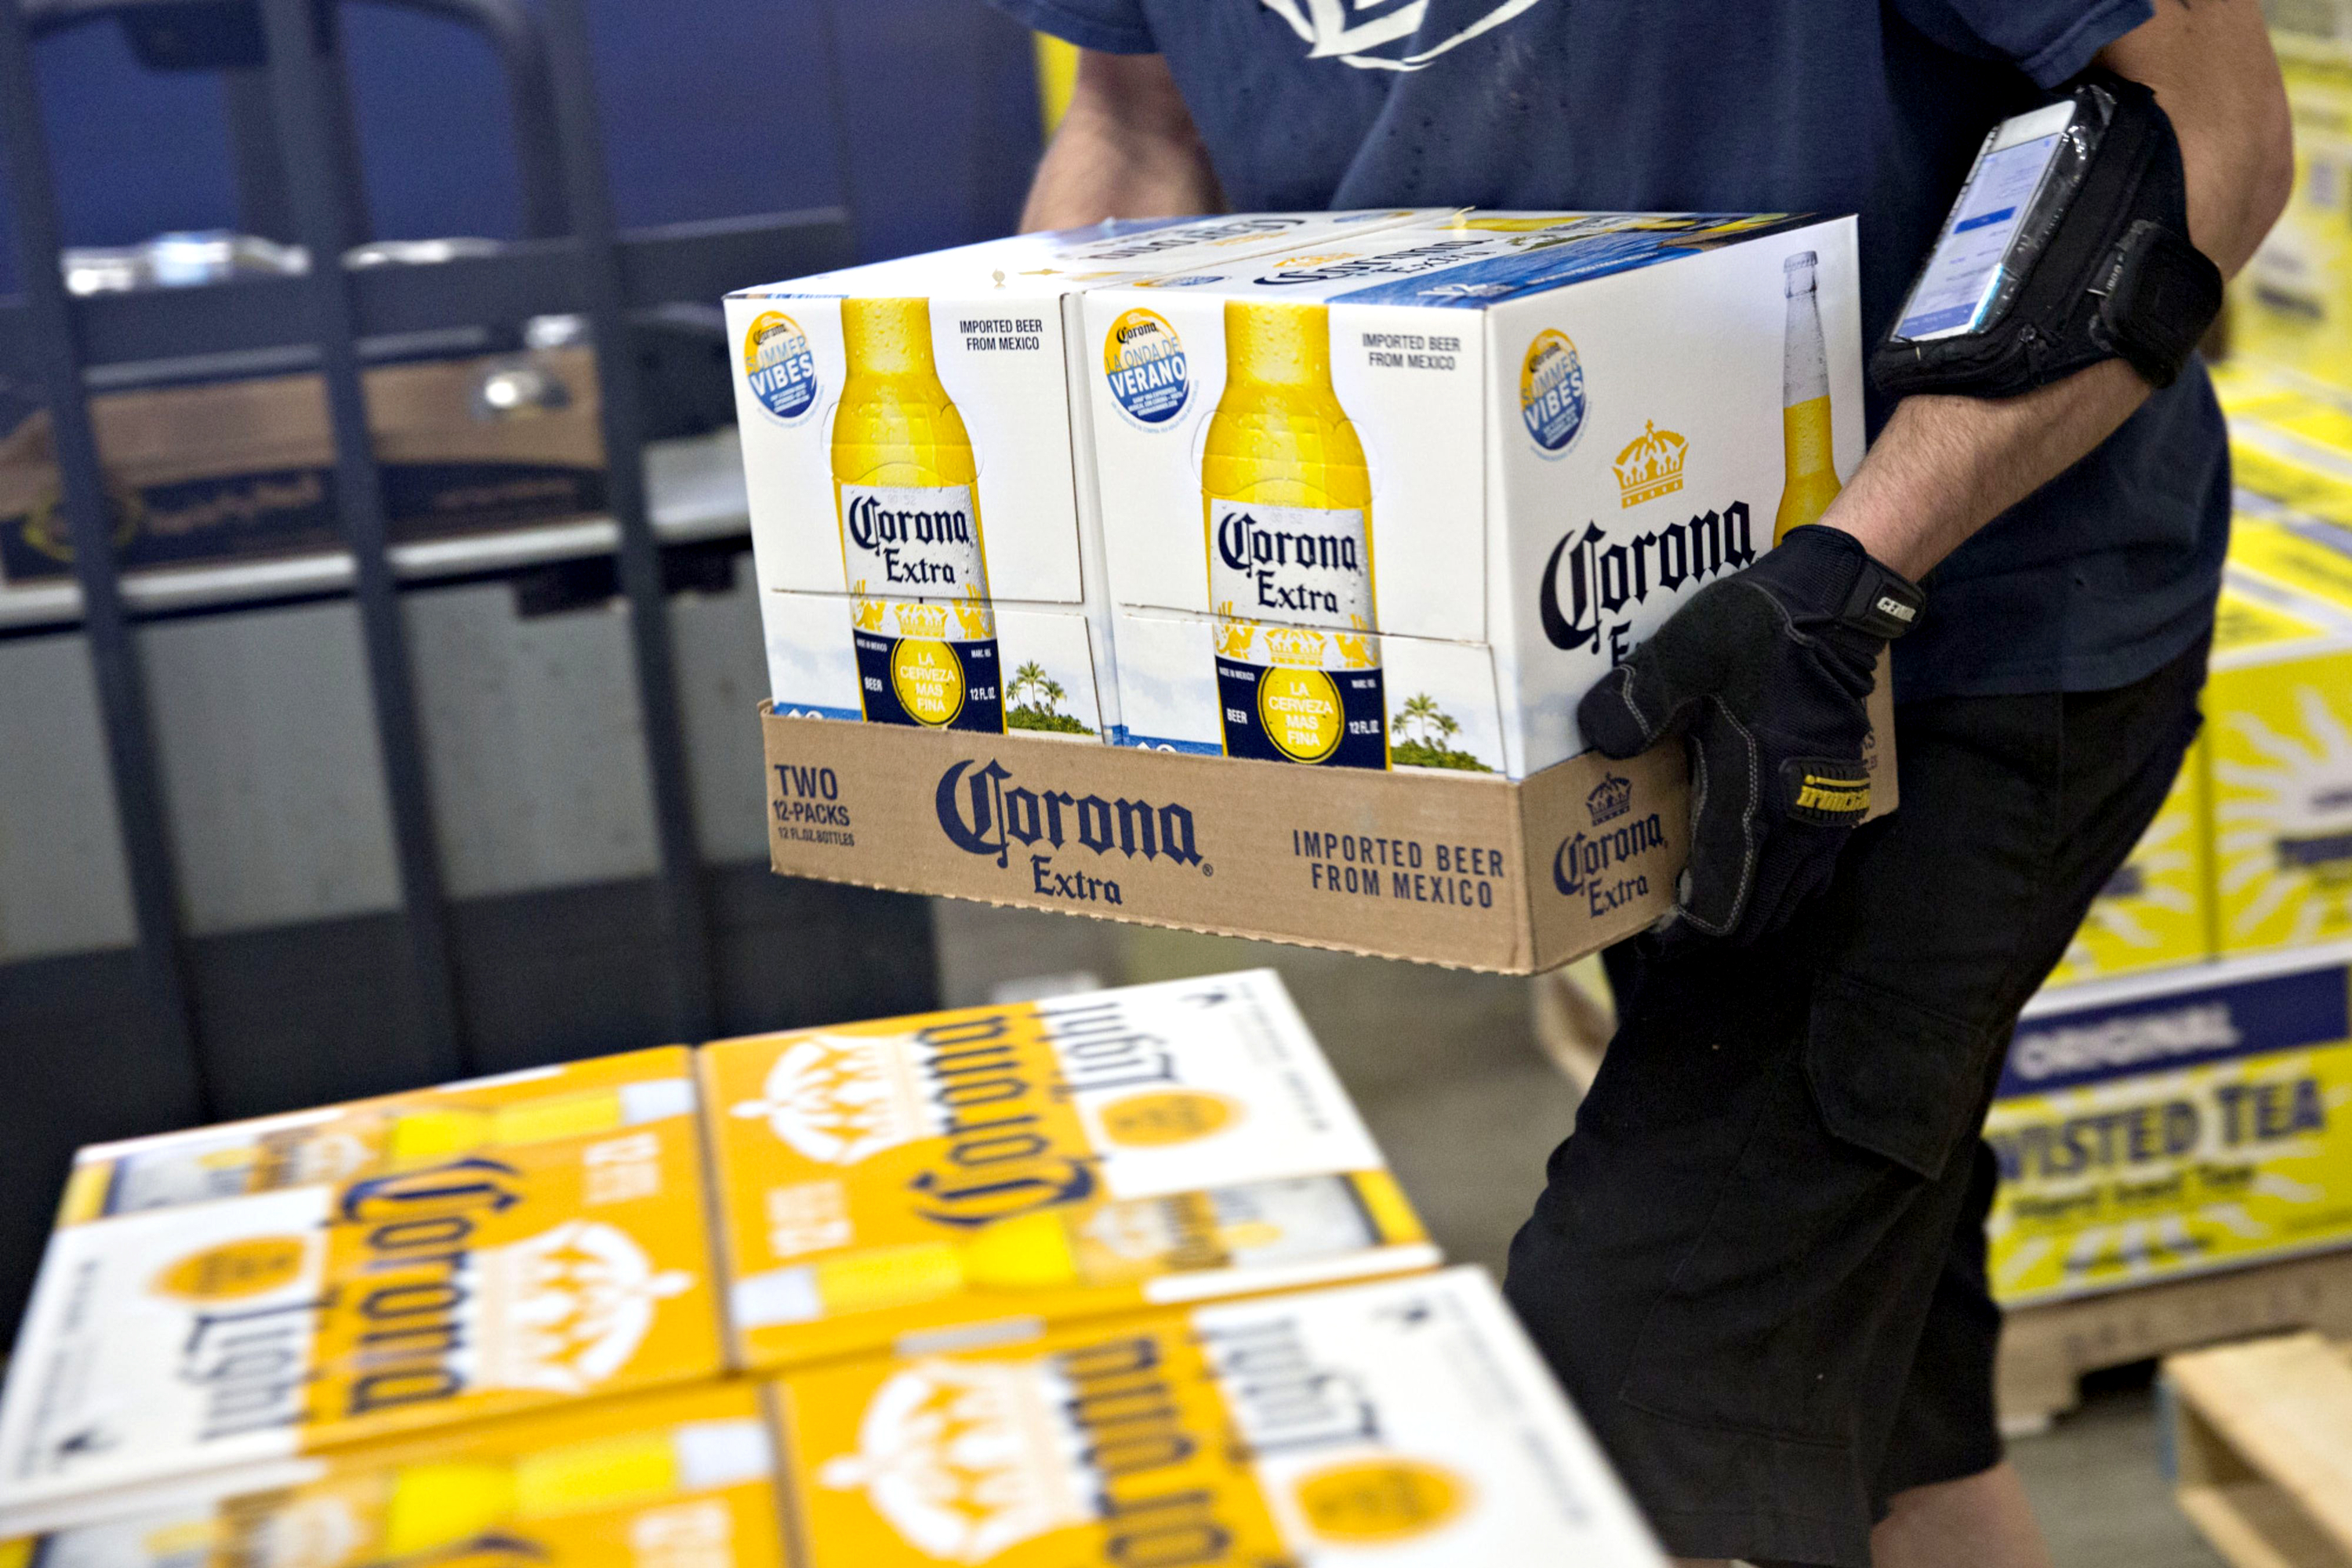 Corona's owner says sales are growing, hits back at a survey that suggested its hurt by coronavirus